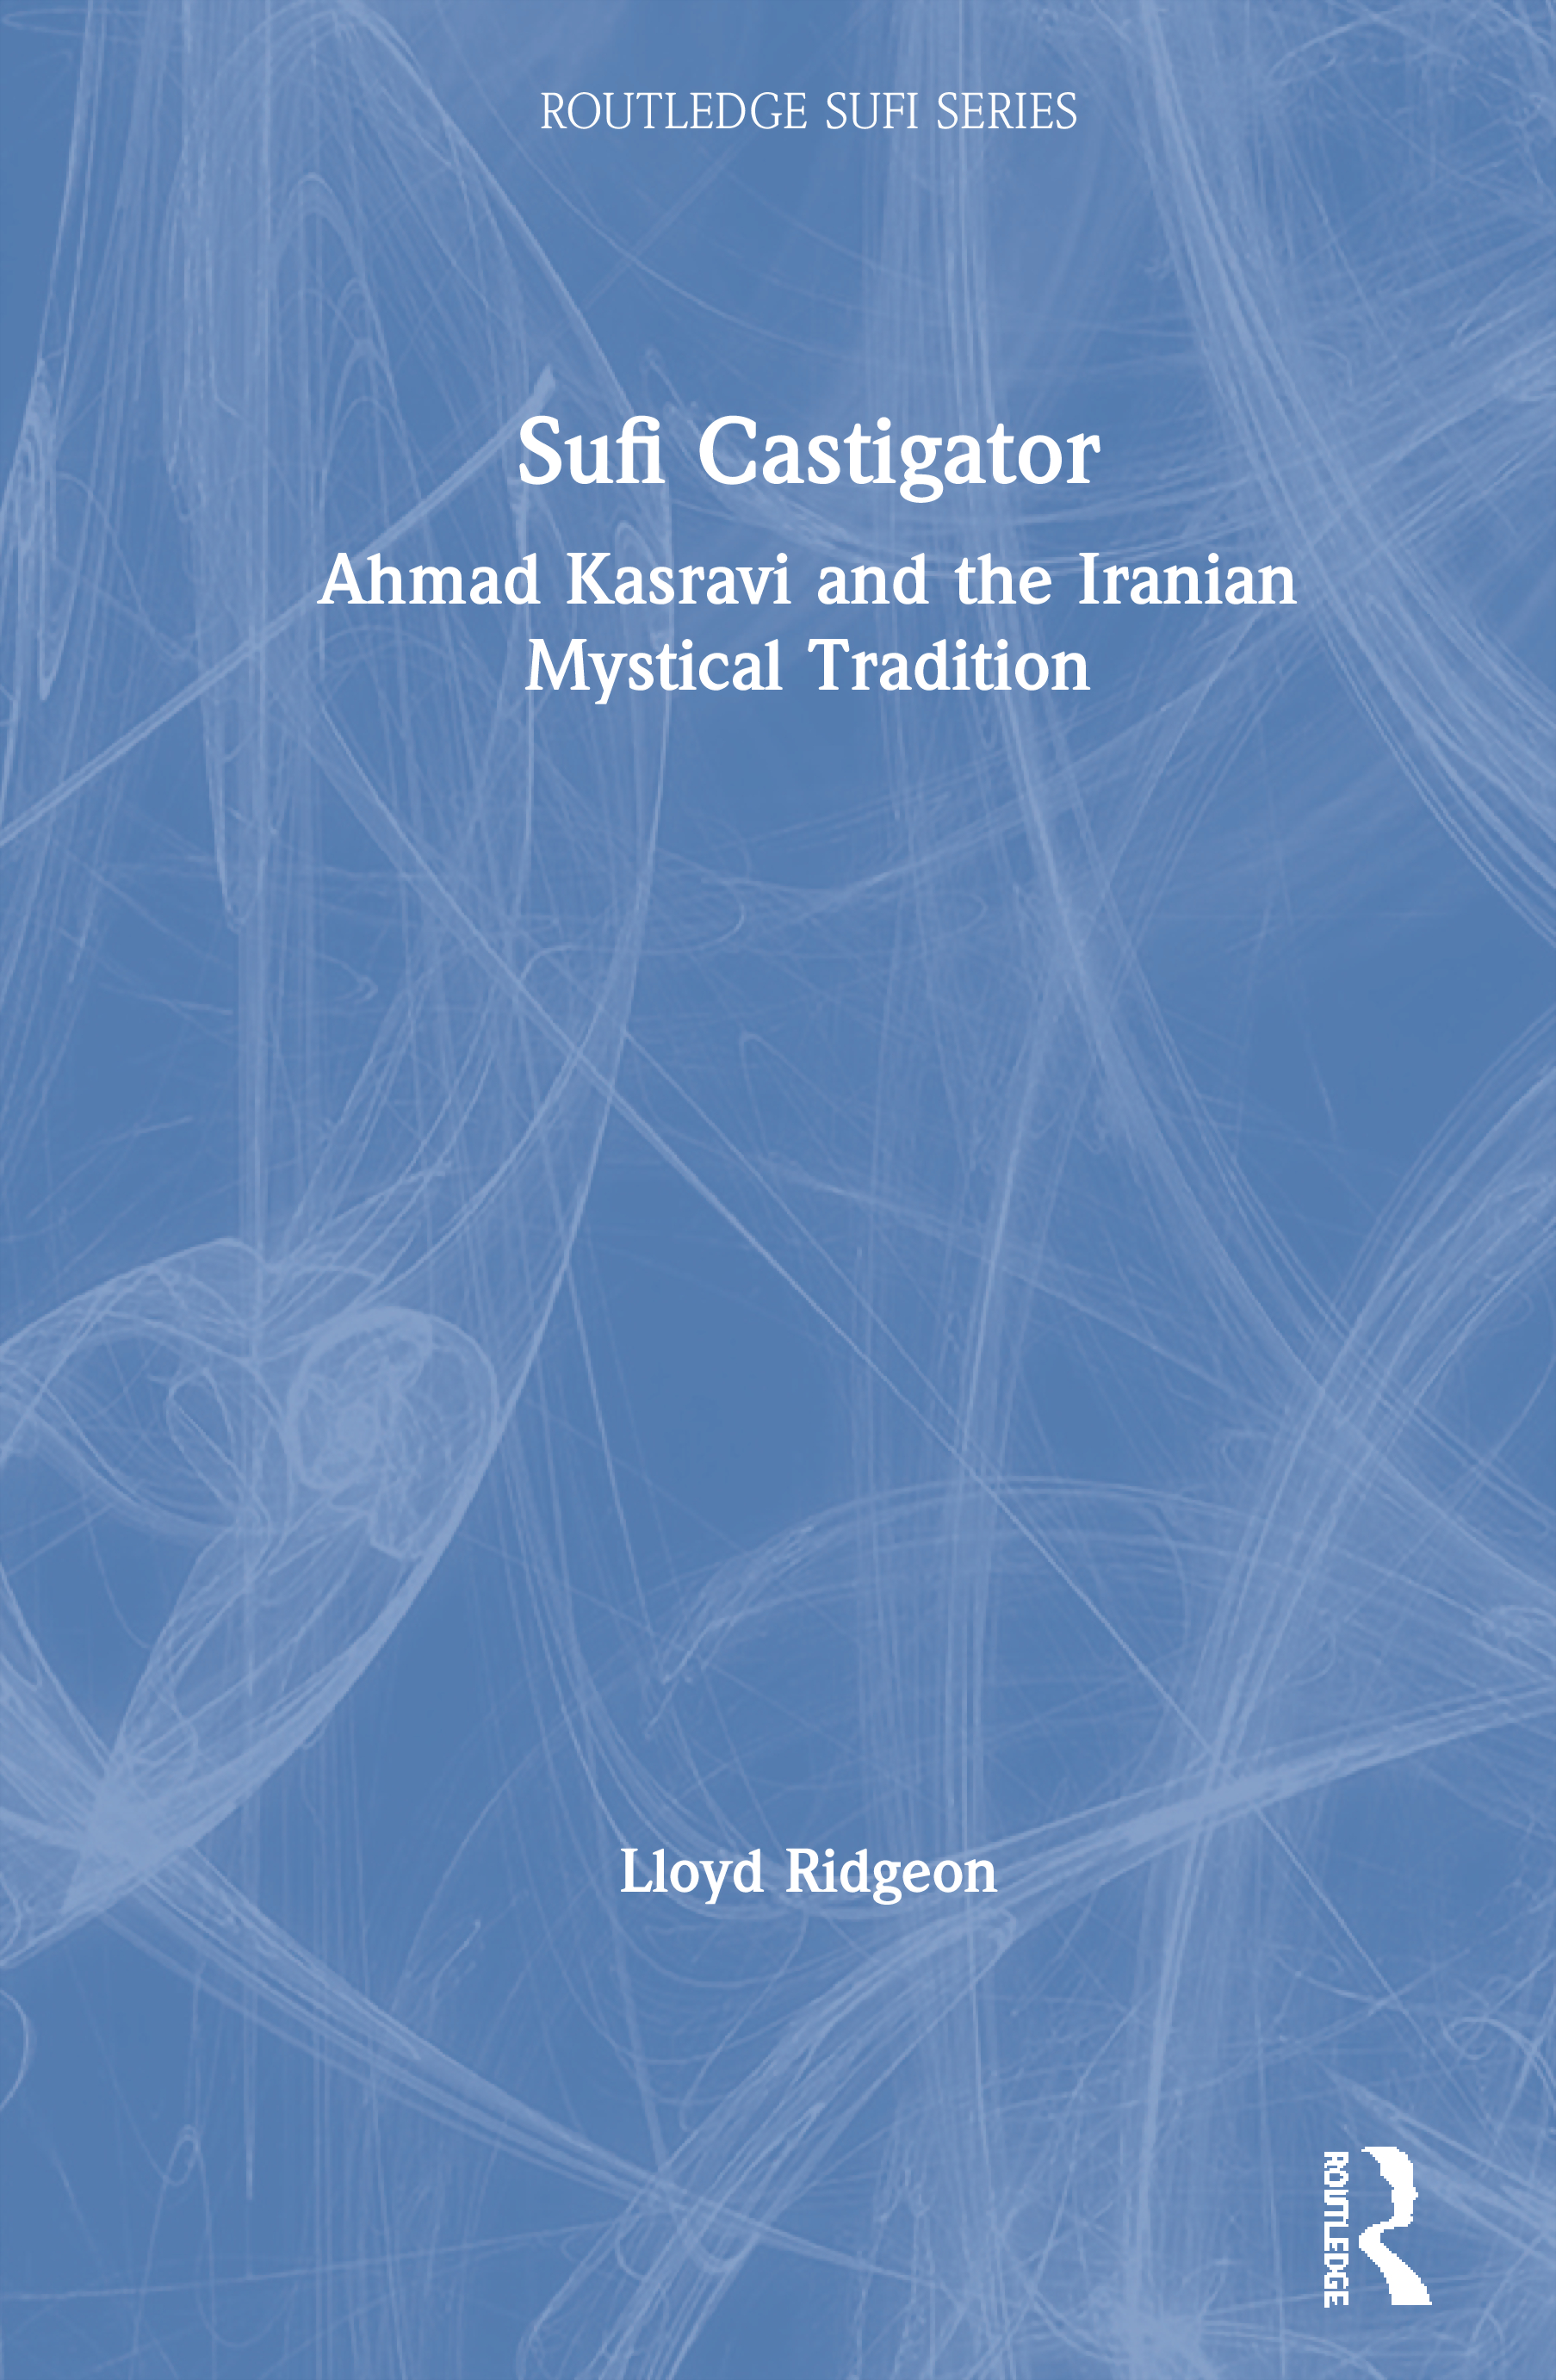 Scourge of the Sufis: Kasravi's rejection of Persian mysticism